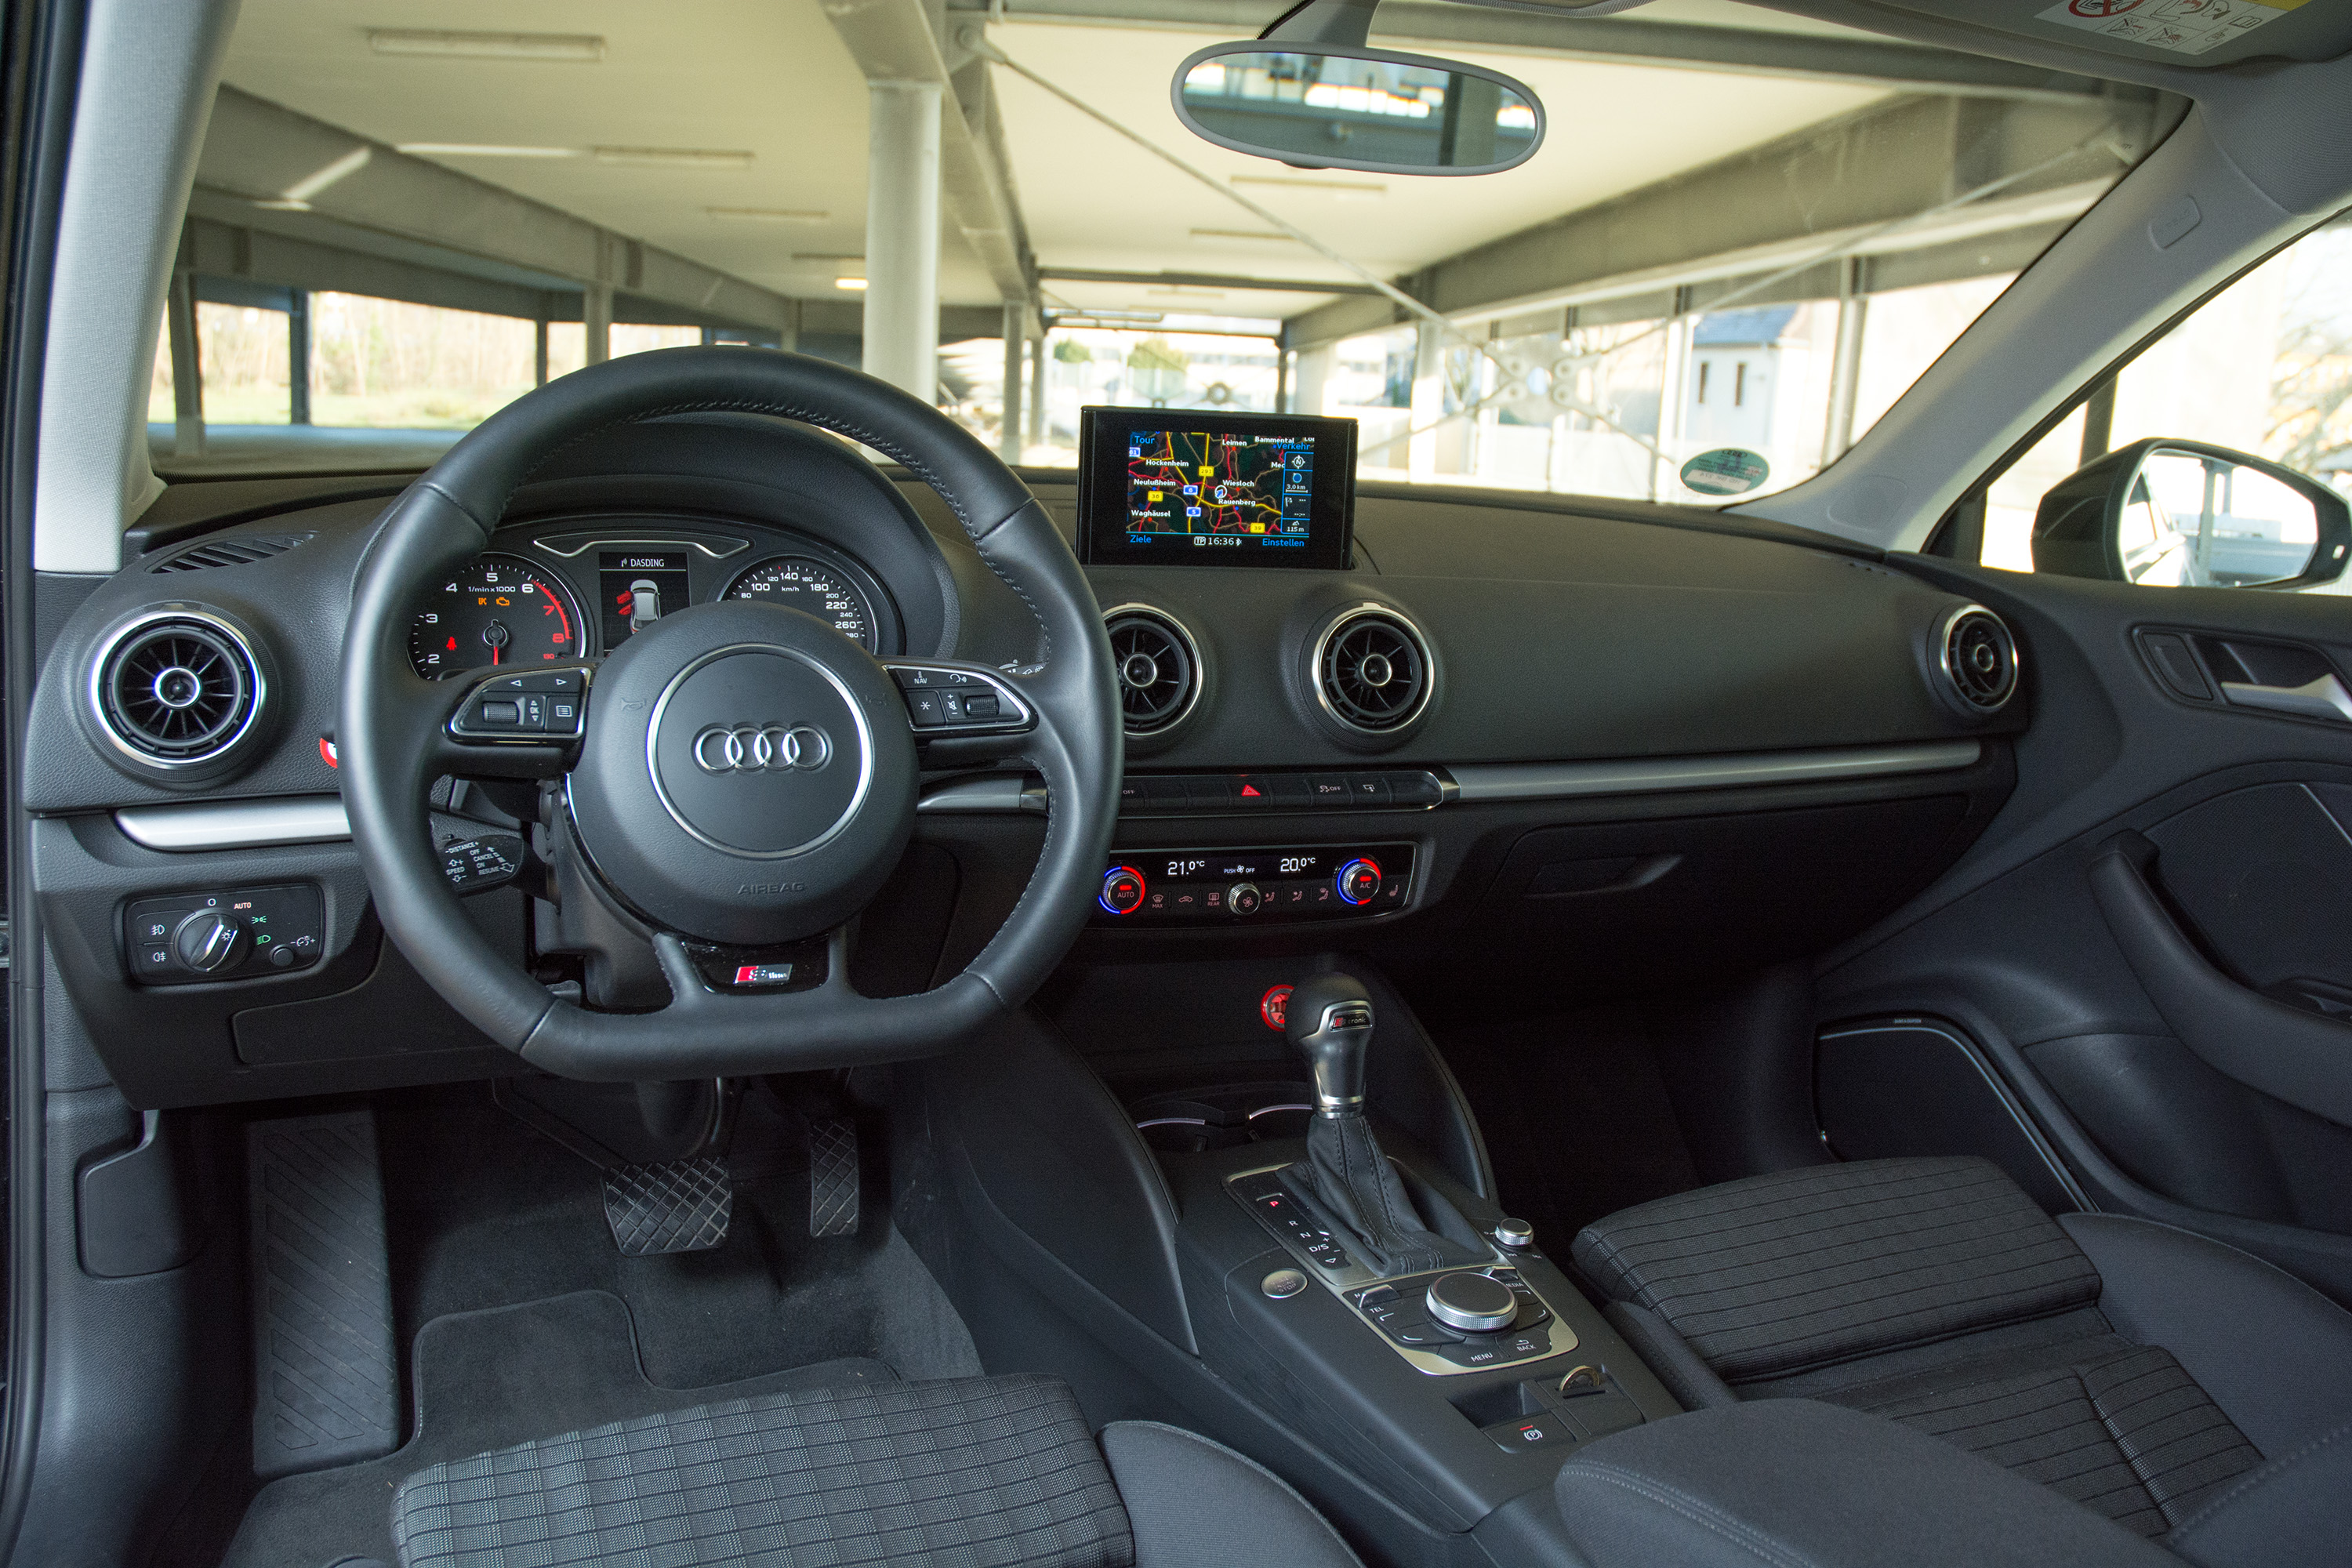 Audi A3 Sportback Interieur File Audi A3 Ambition Interieur Jpg Wikimedia Commons